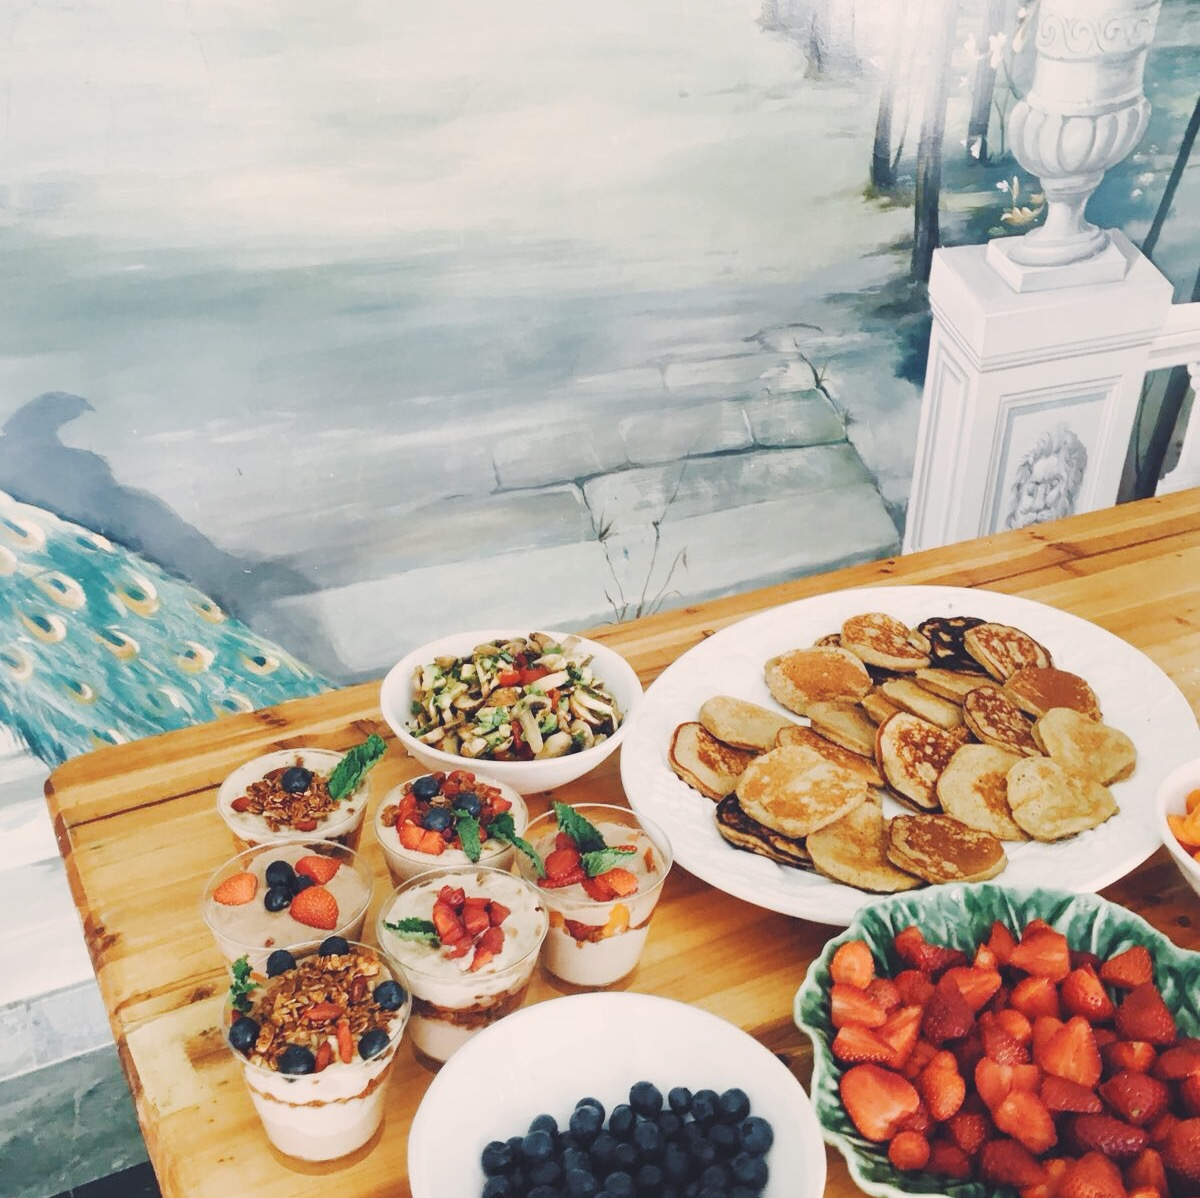 bachelorette workshop and brunch | please consider | joana limao